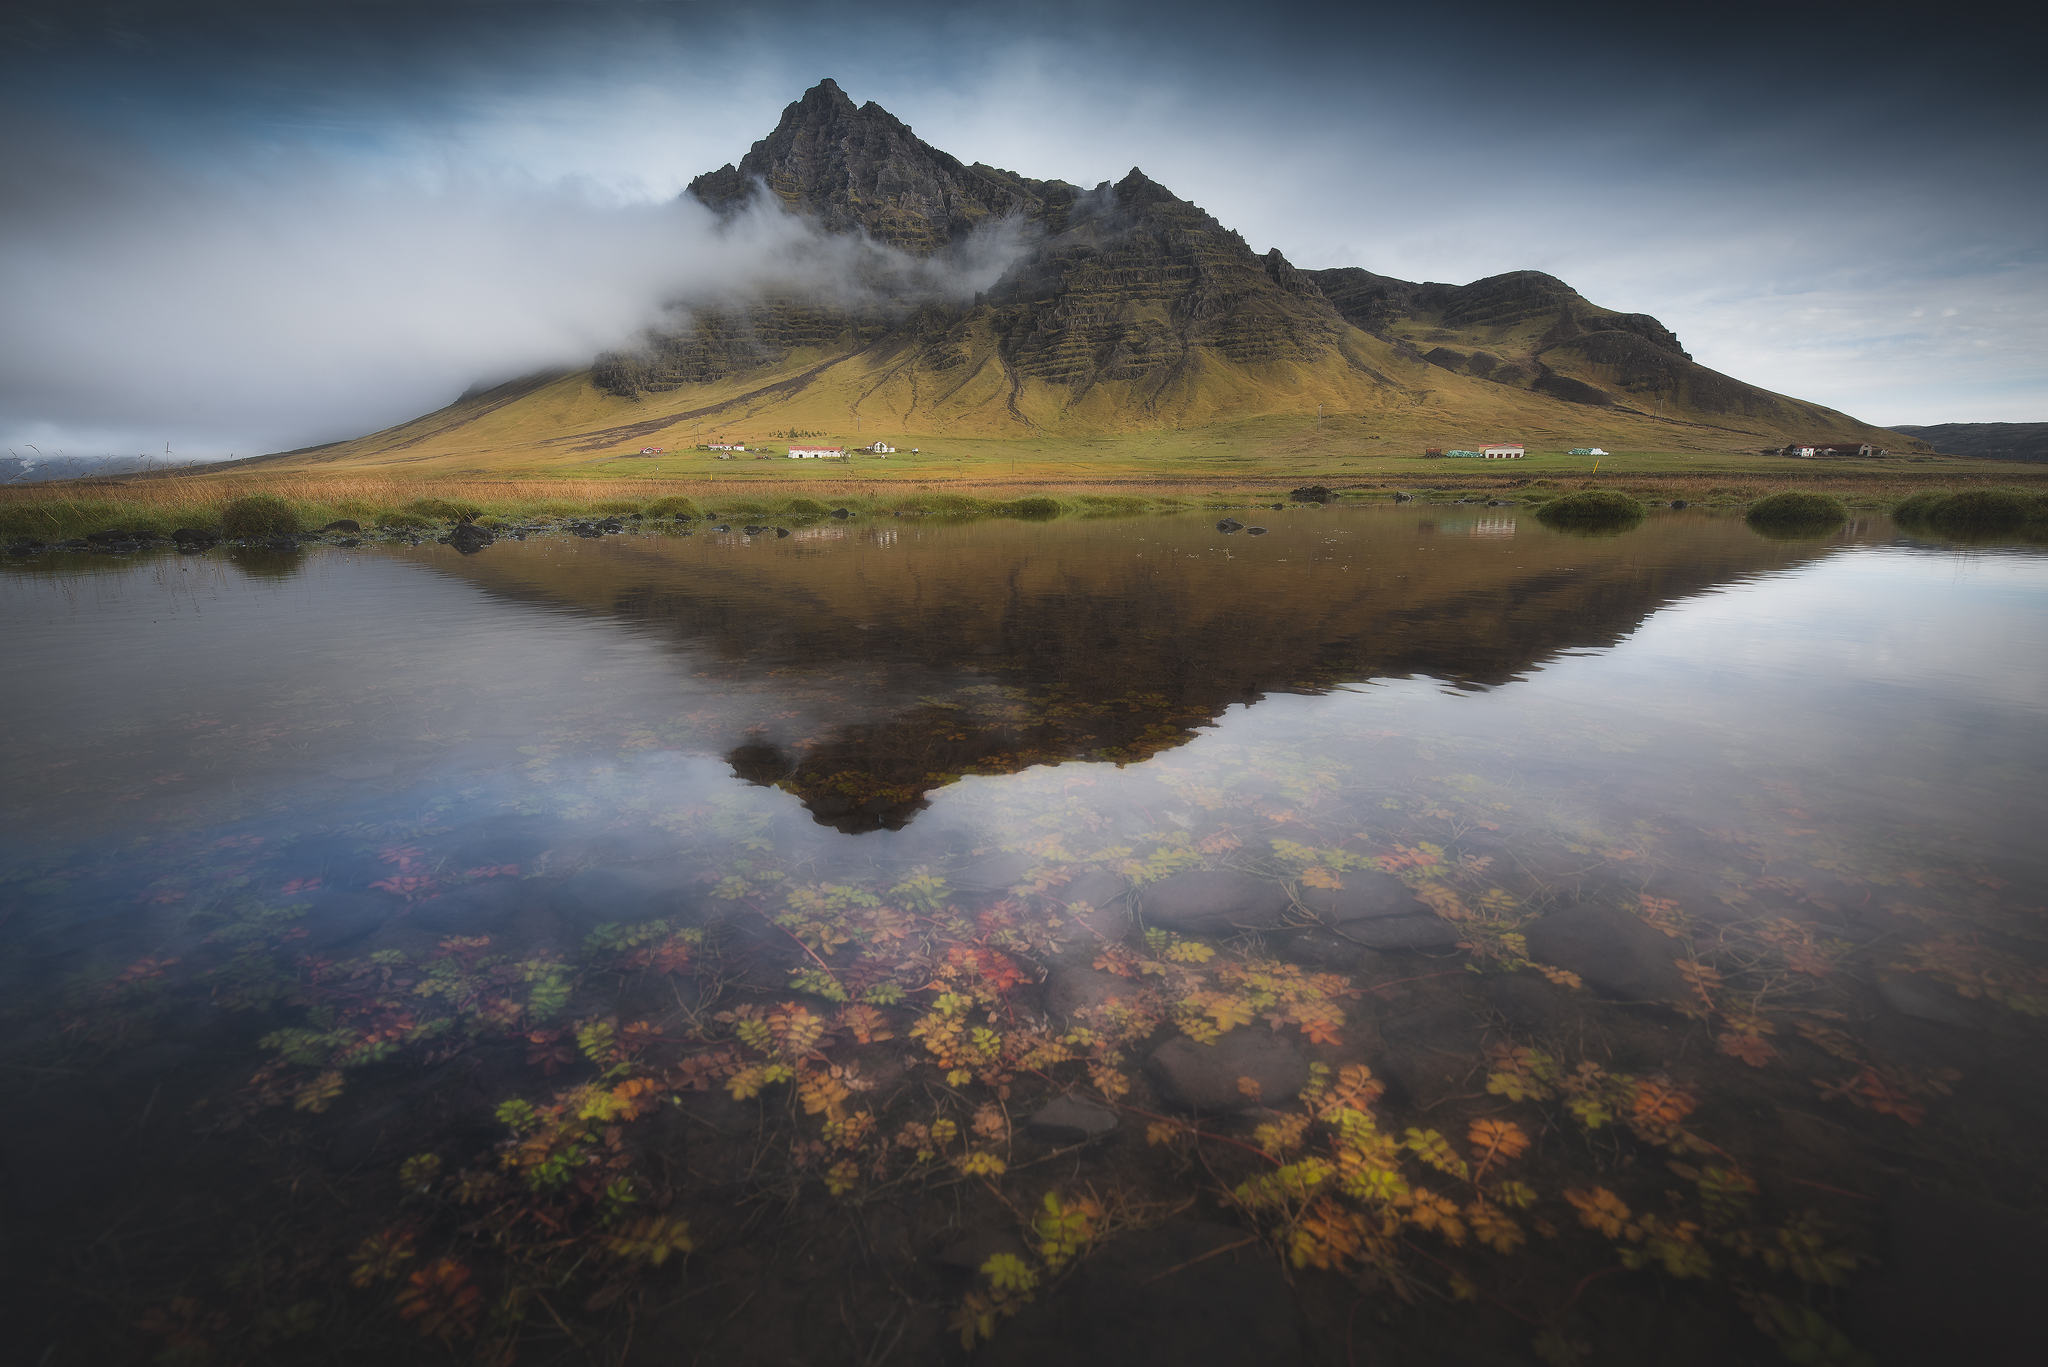 5 Simple Lightroom Post Processing Tips for Landscape Photography